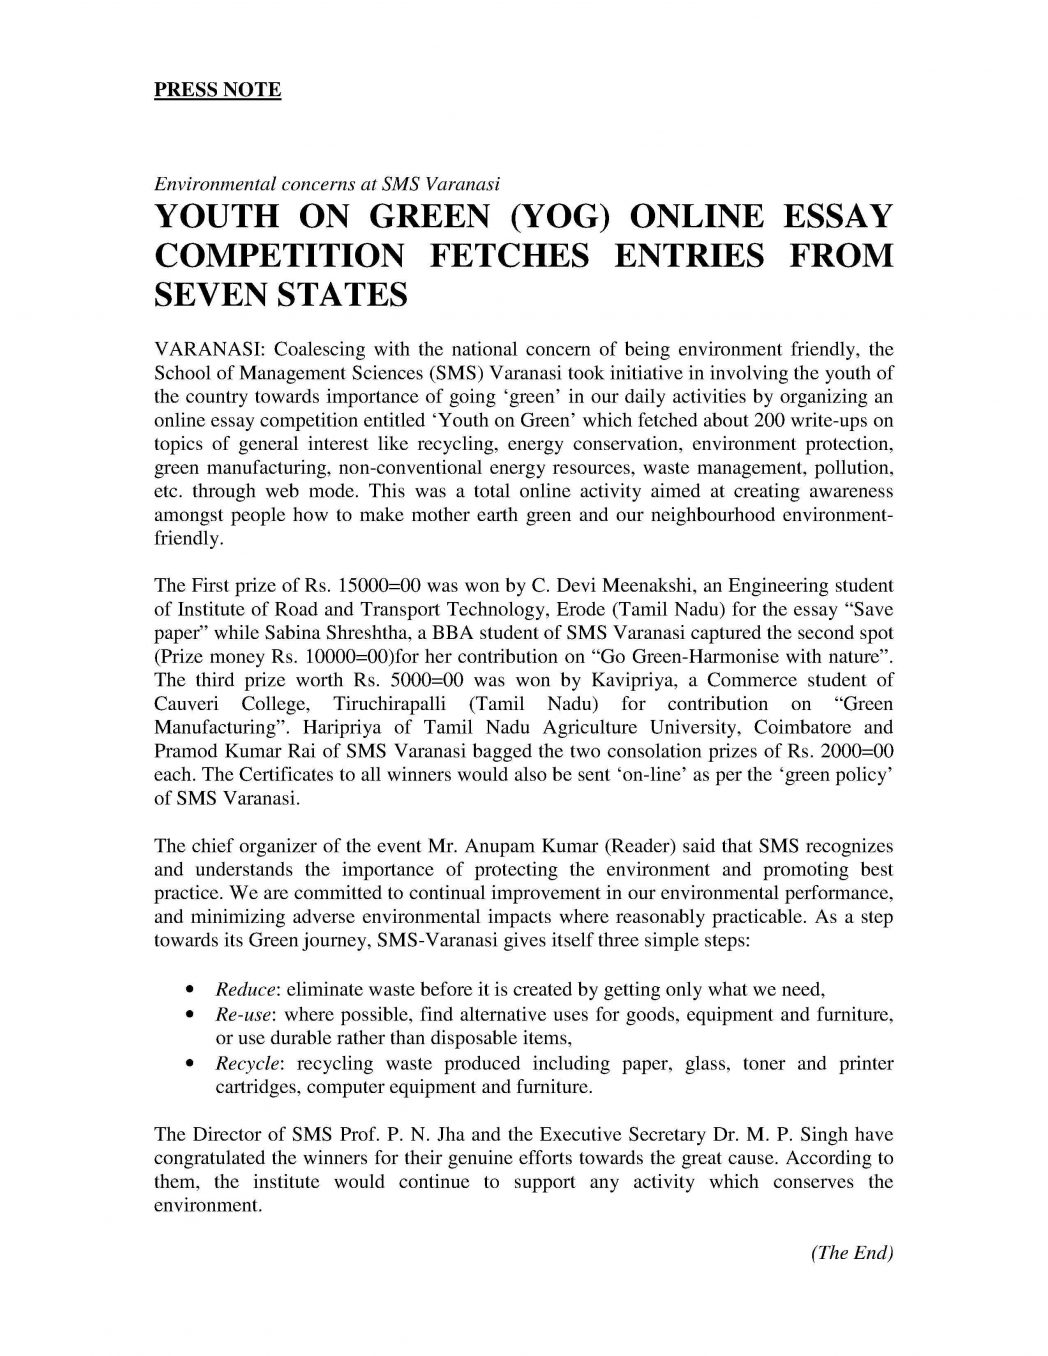 020 Best Essays For College Essay On Good Habits How Tot Application Online Yog Press Re About Yourself Examples Your Background Failure Prompt Off Hook 1048x1356 Example Amazing To Start An A Definition With Quote Full